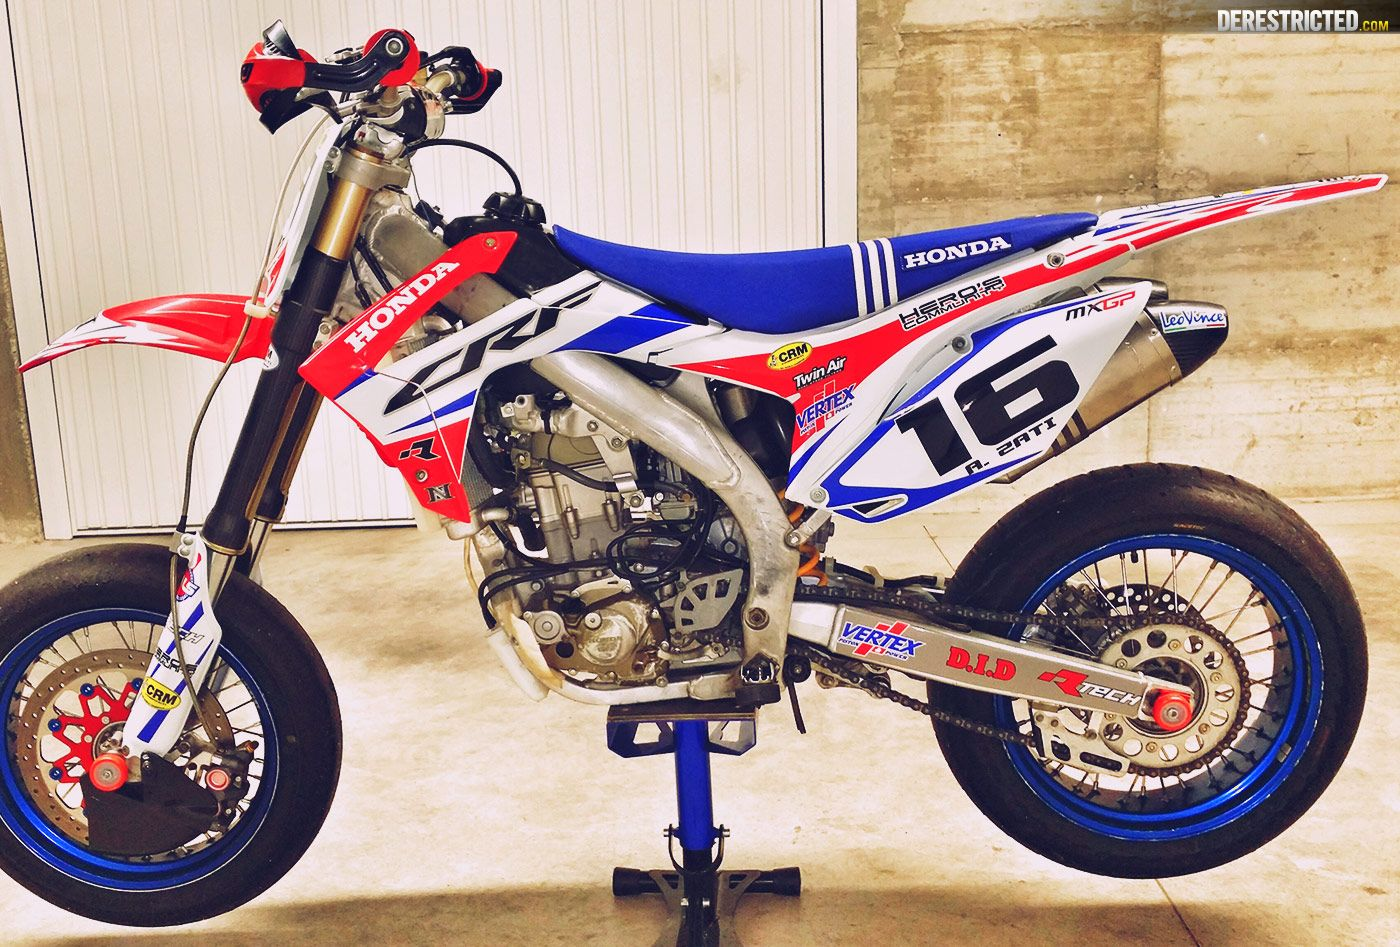 honda crf450 | supermoto | Pinterest | Honda, Honda cr and ...